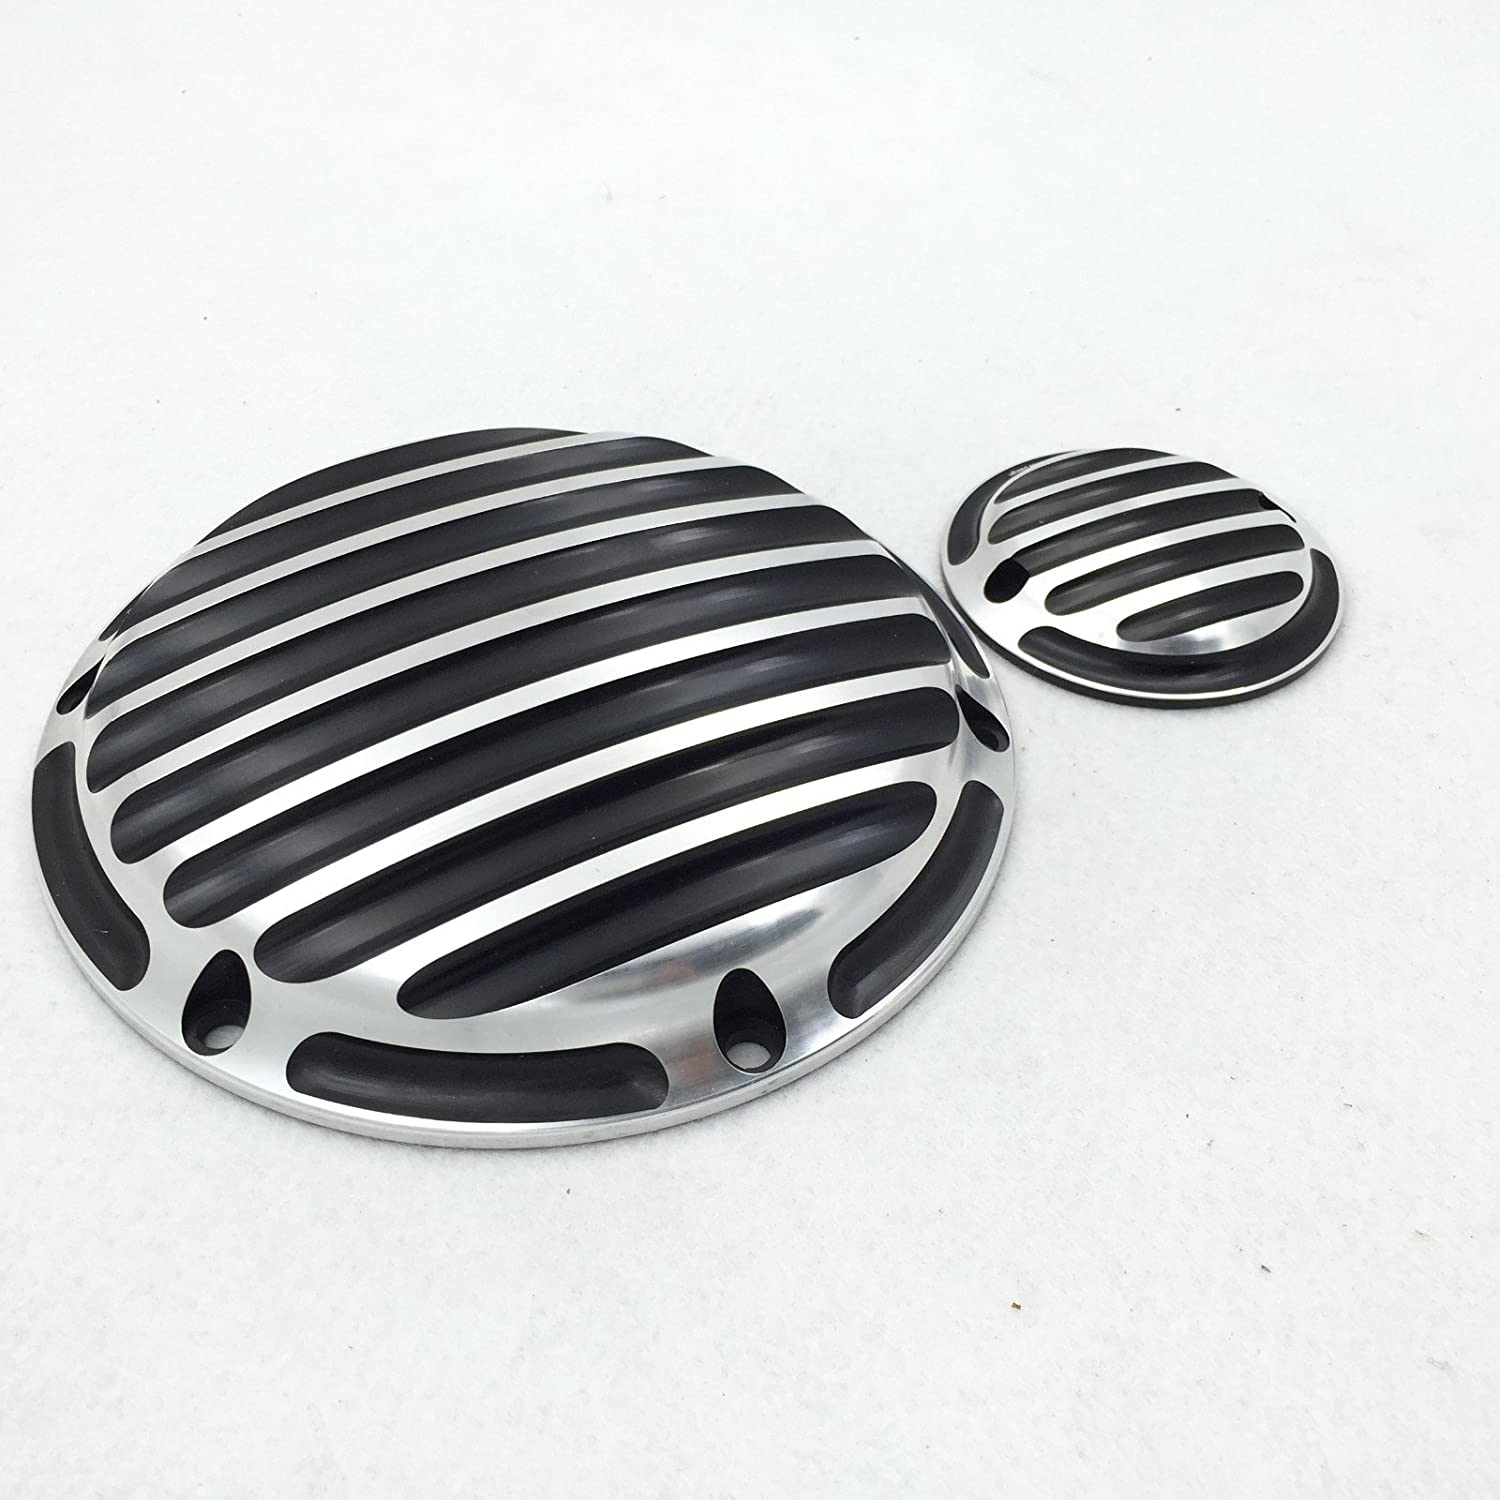 HTT Group Motorcycle Groove Chrome Engine Derby Timer Cover For Harley Sportster 883 Roadster XL883R Iron XL883N Roadster XL883R